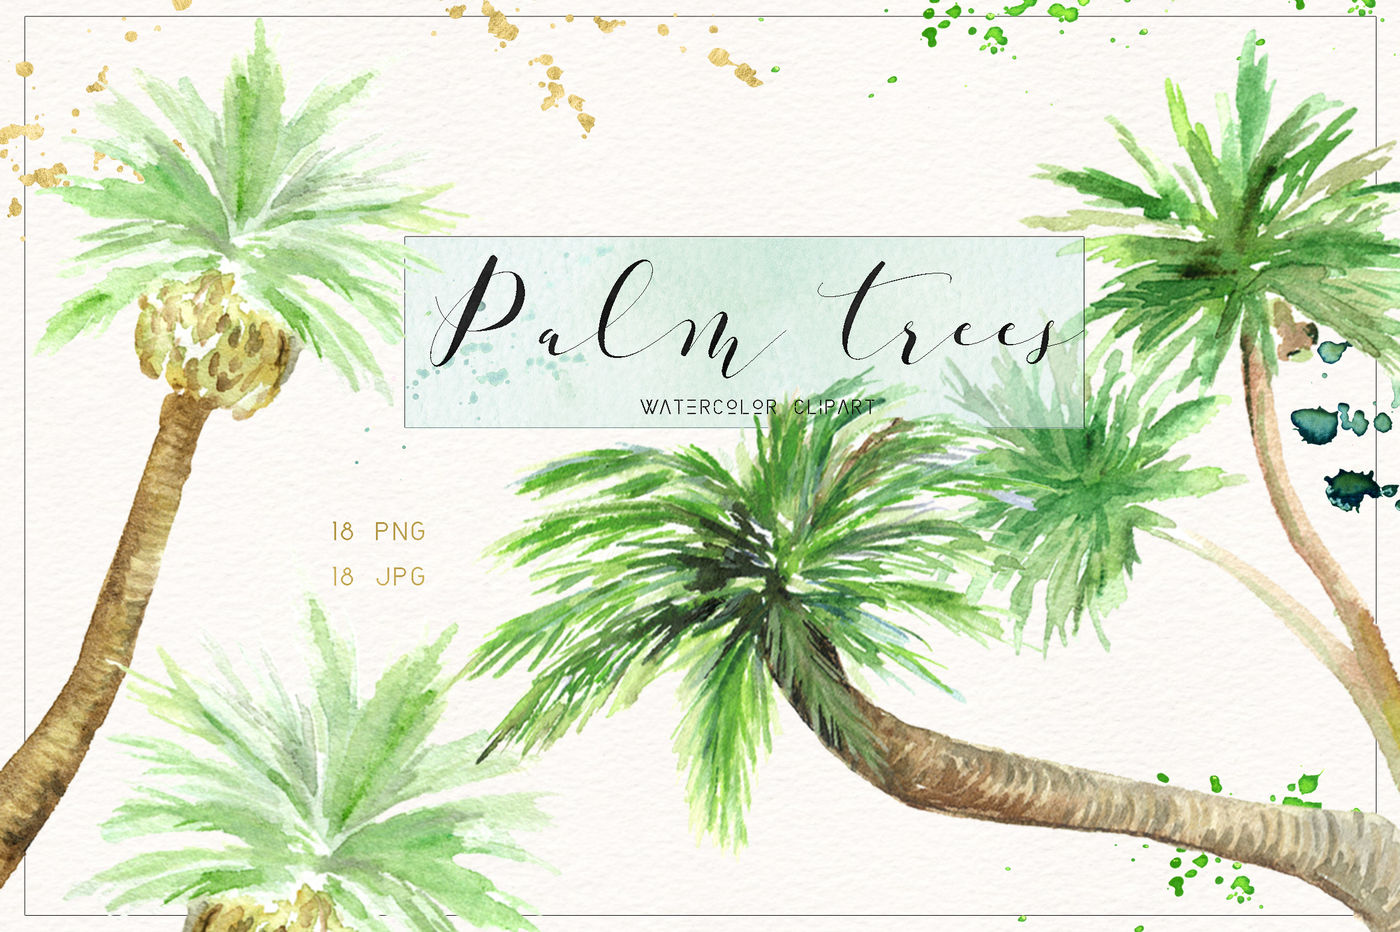 Watercolor palm tree clipart png stock Palm tree. Watercolor clipart. By LABFcreations ... png stock